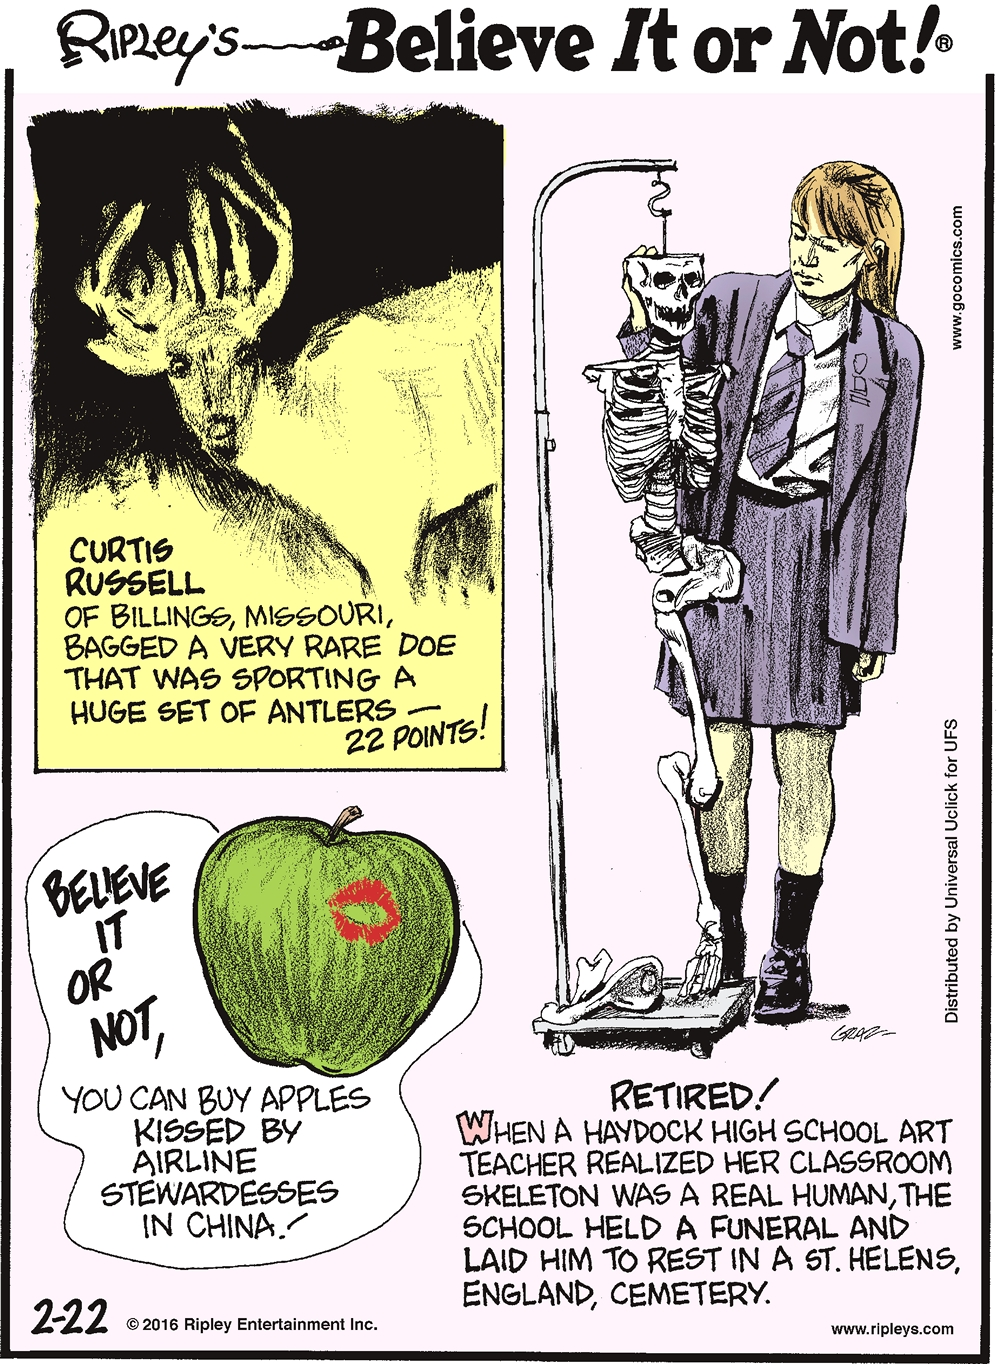 Curtis Russell of Billings, Missouri, bagged a very rare doe that was sporting a huge set of antlers—22 points! -------------------- Believe it or not, you can buy apples kissed by airline stewardesses in China! -------------------- Retired! When a Haydock High School art teacher realized her classroom skeleton was a real human, the school held a funeral and laid him to rest in a St. Helens, England, cemetery.